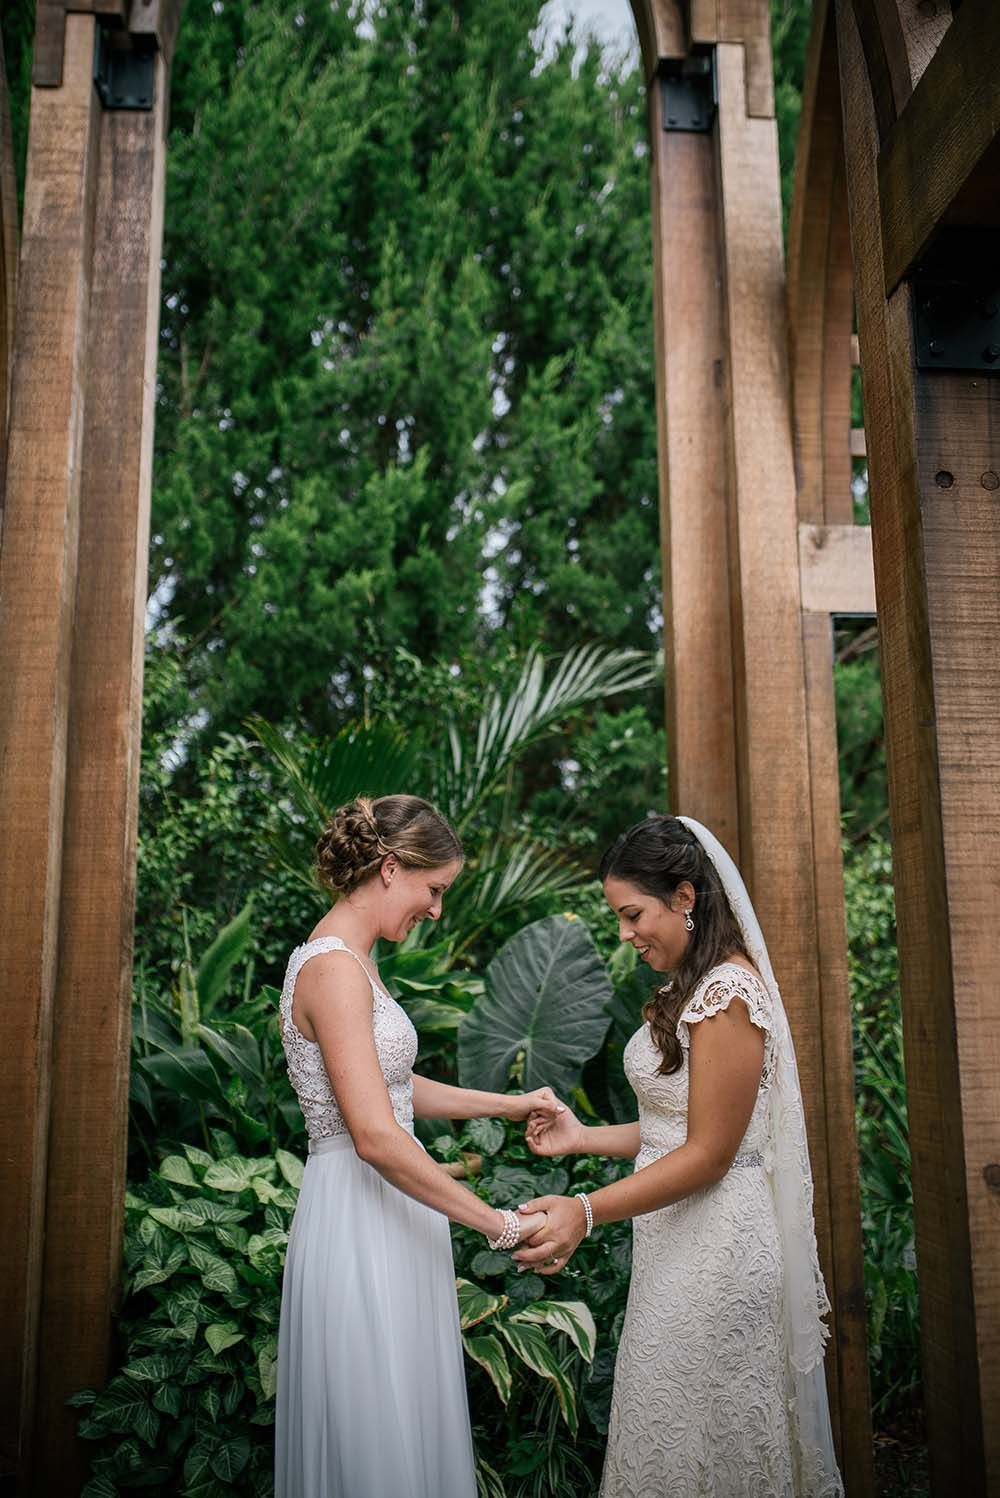 Rainy Farm Inspired North Carolina Lesbian Wedding North Carolina